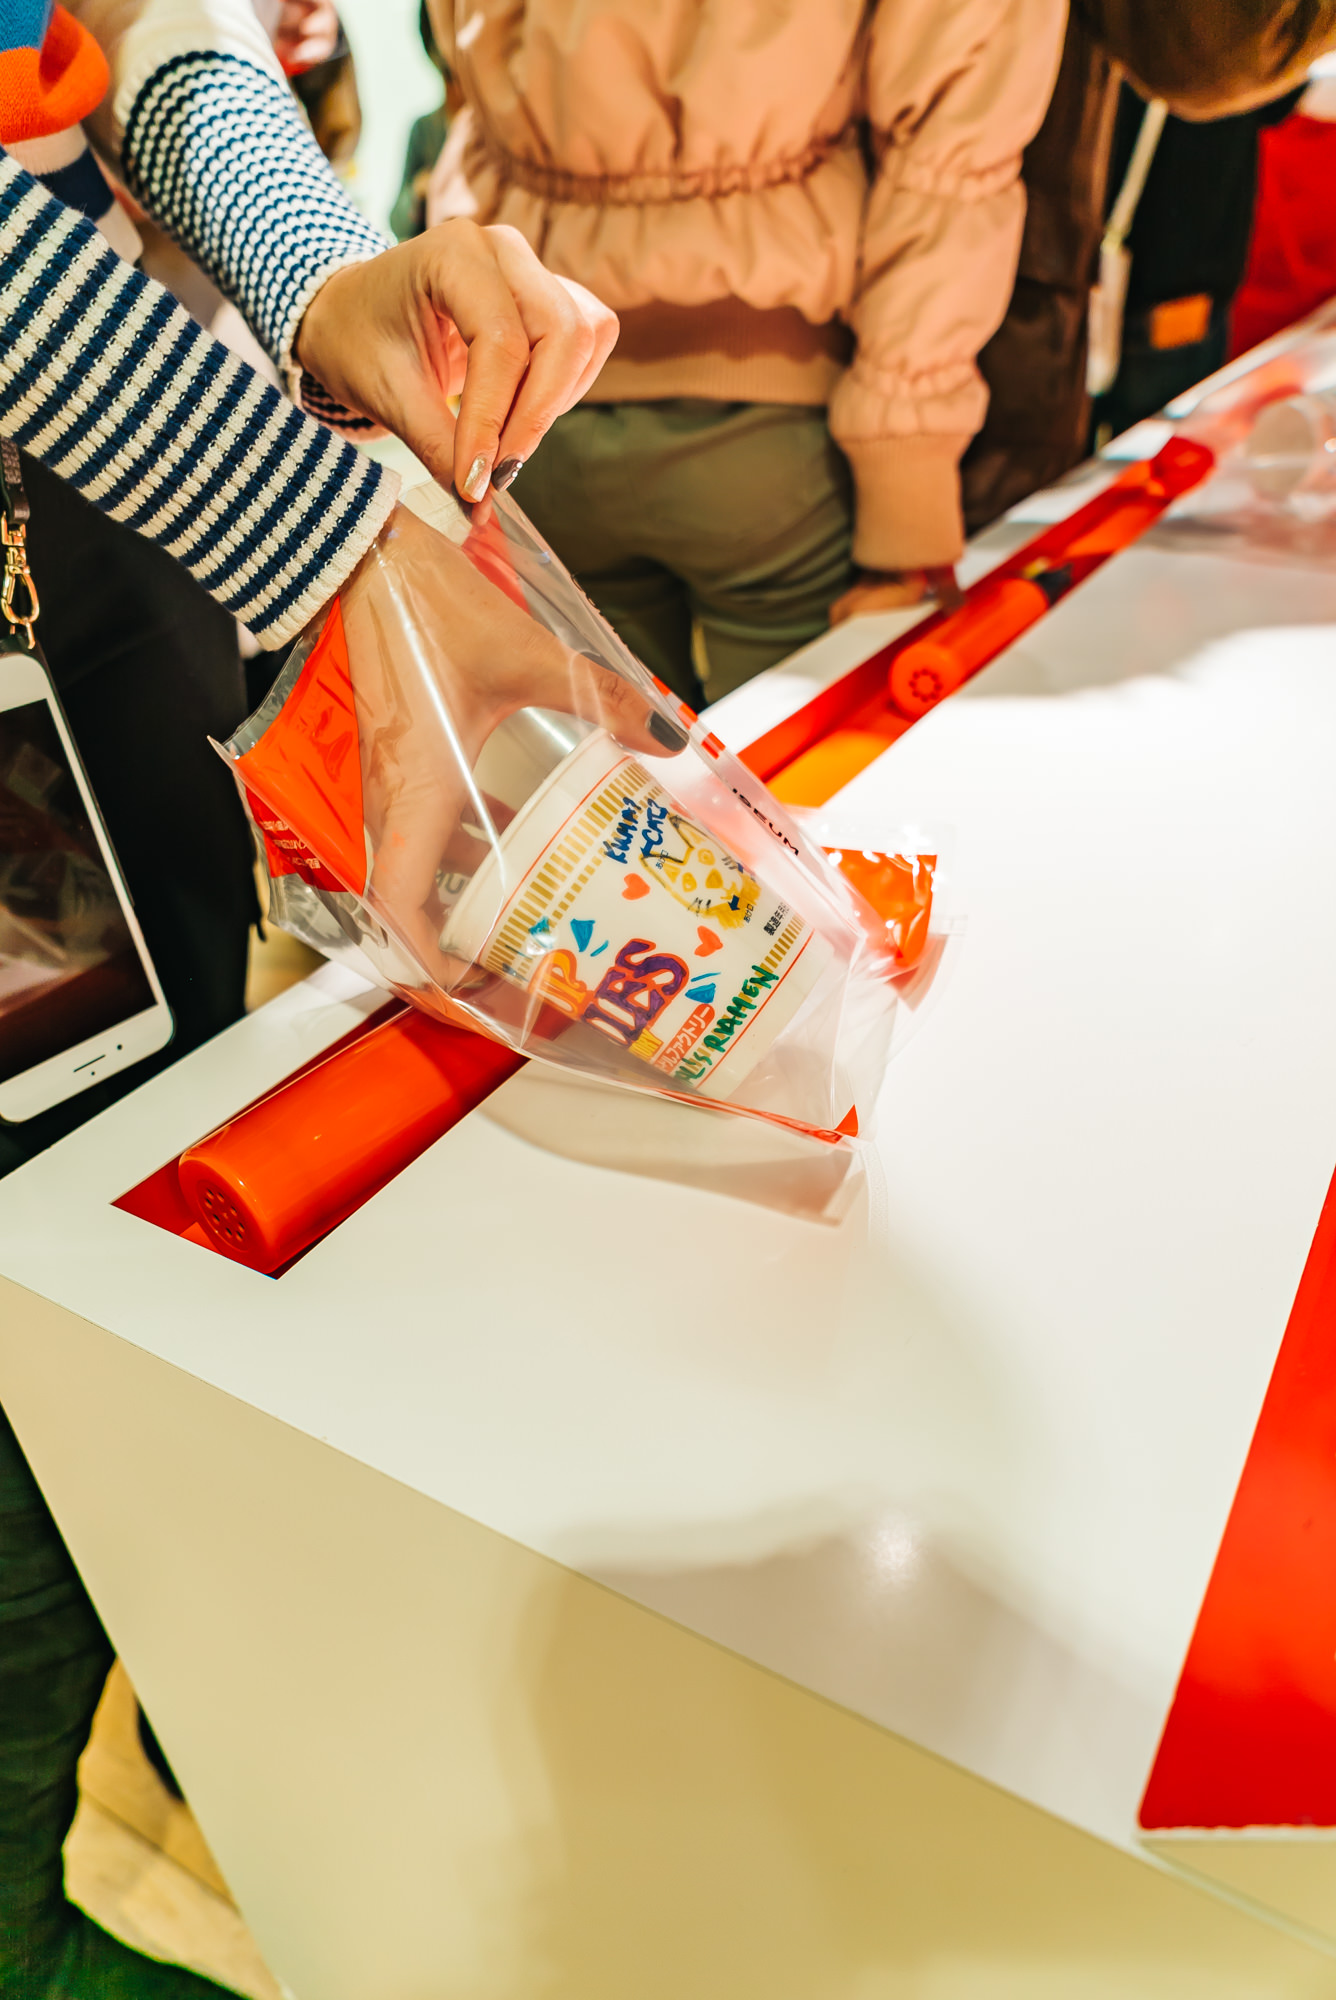 Placing our Cup Noodles in the To-Go bag